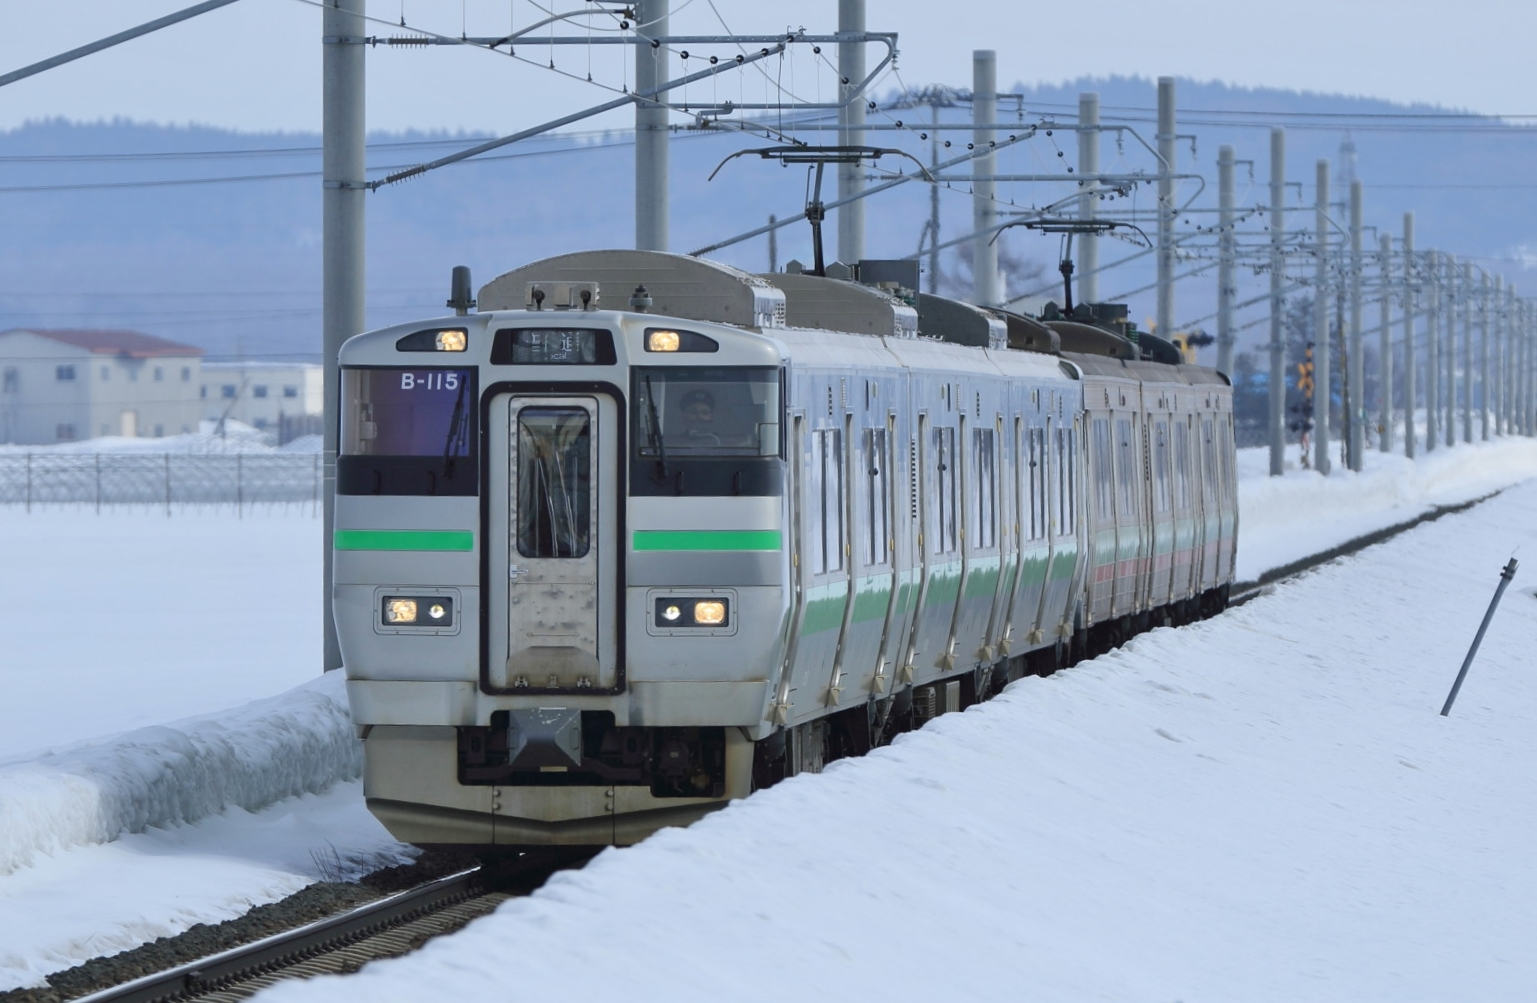 https://upload.wikimedia.org/wikipedia/commons/8/80/733_B115_731_Gakuentoshi_Line_20140323.jpg